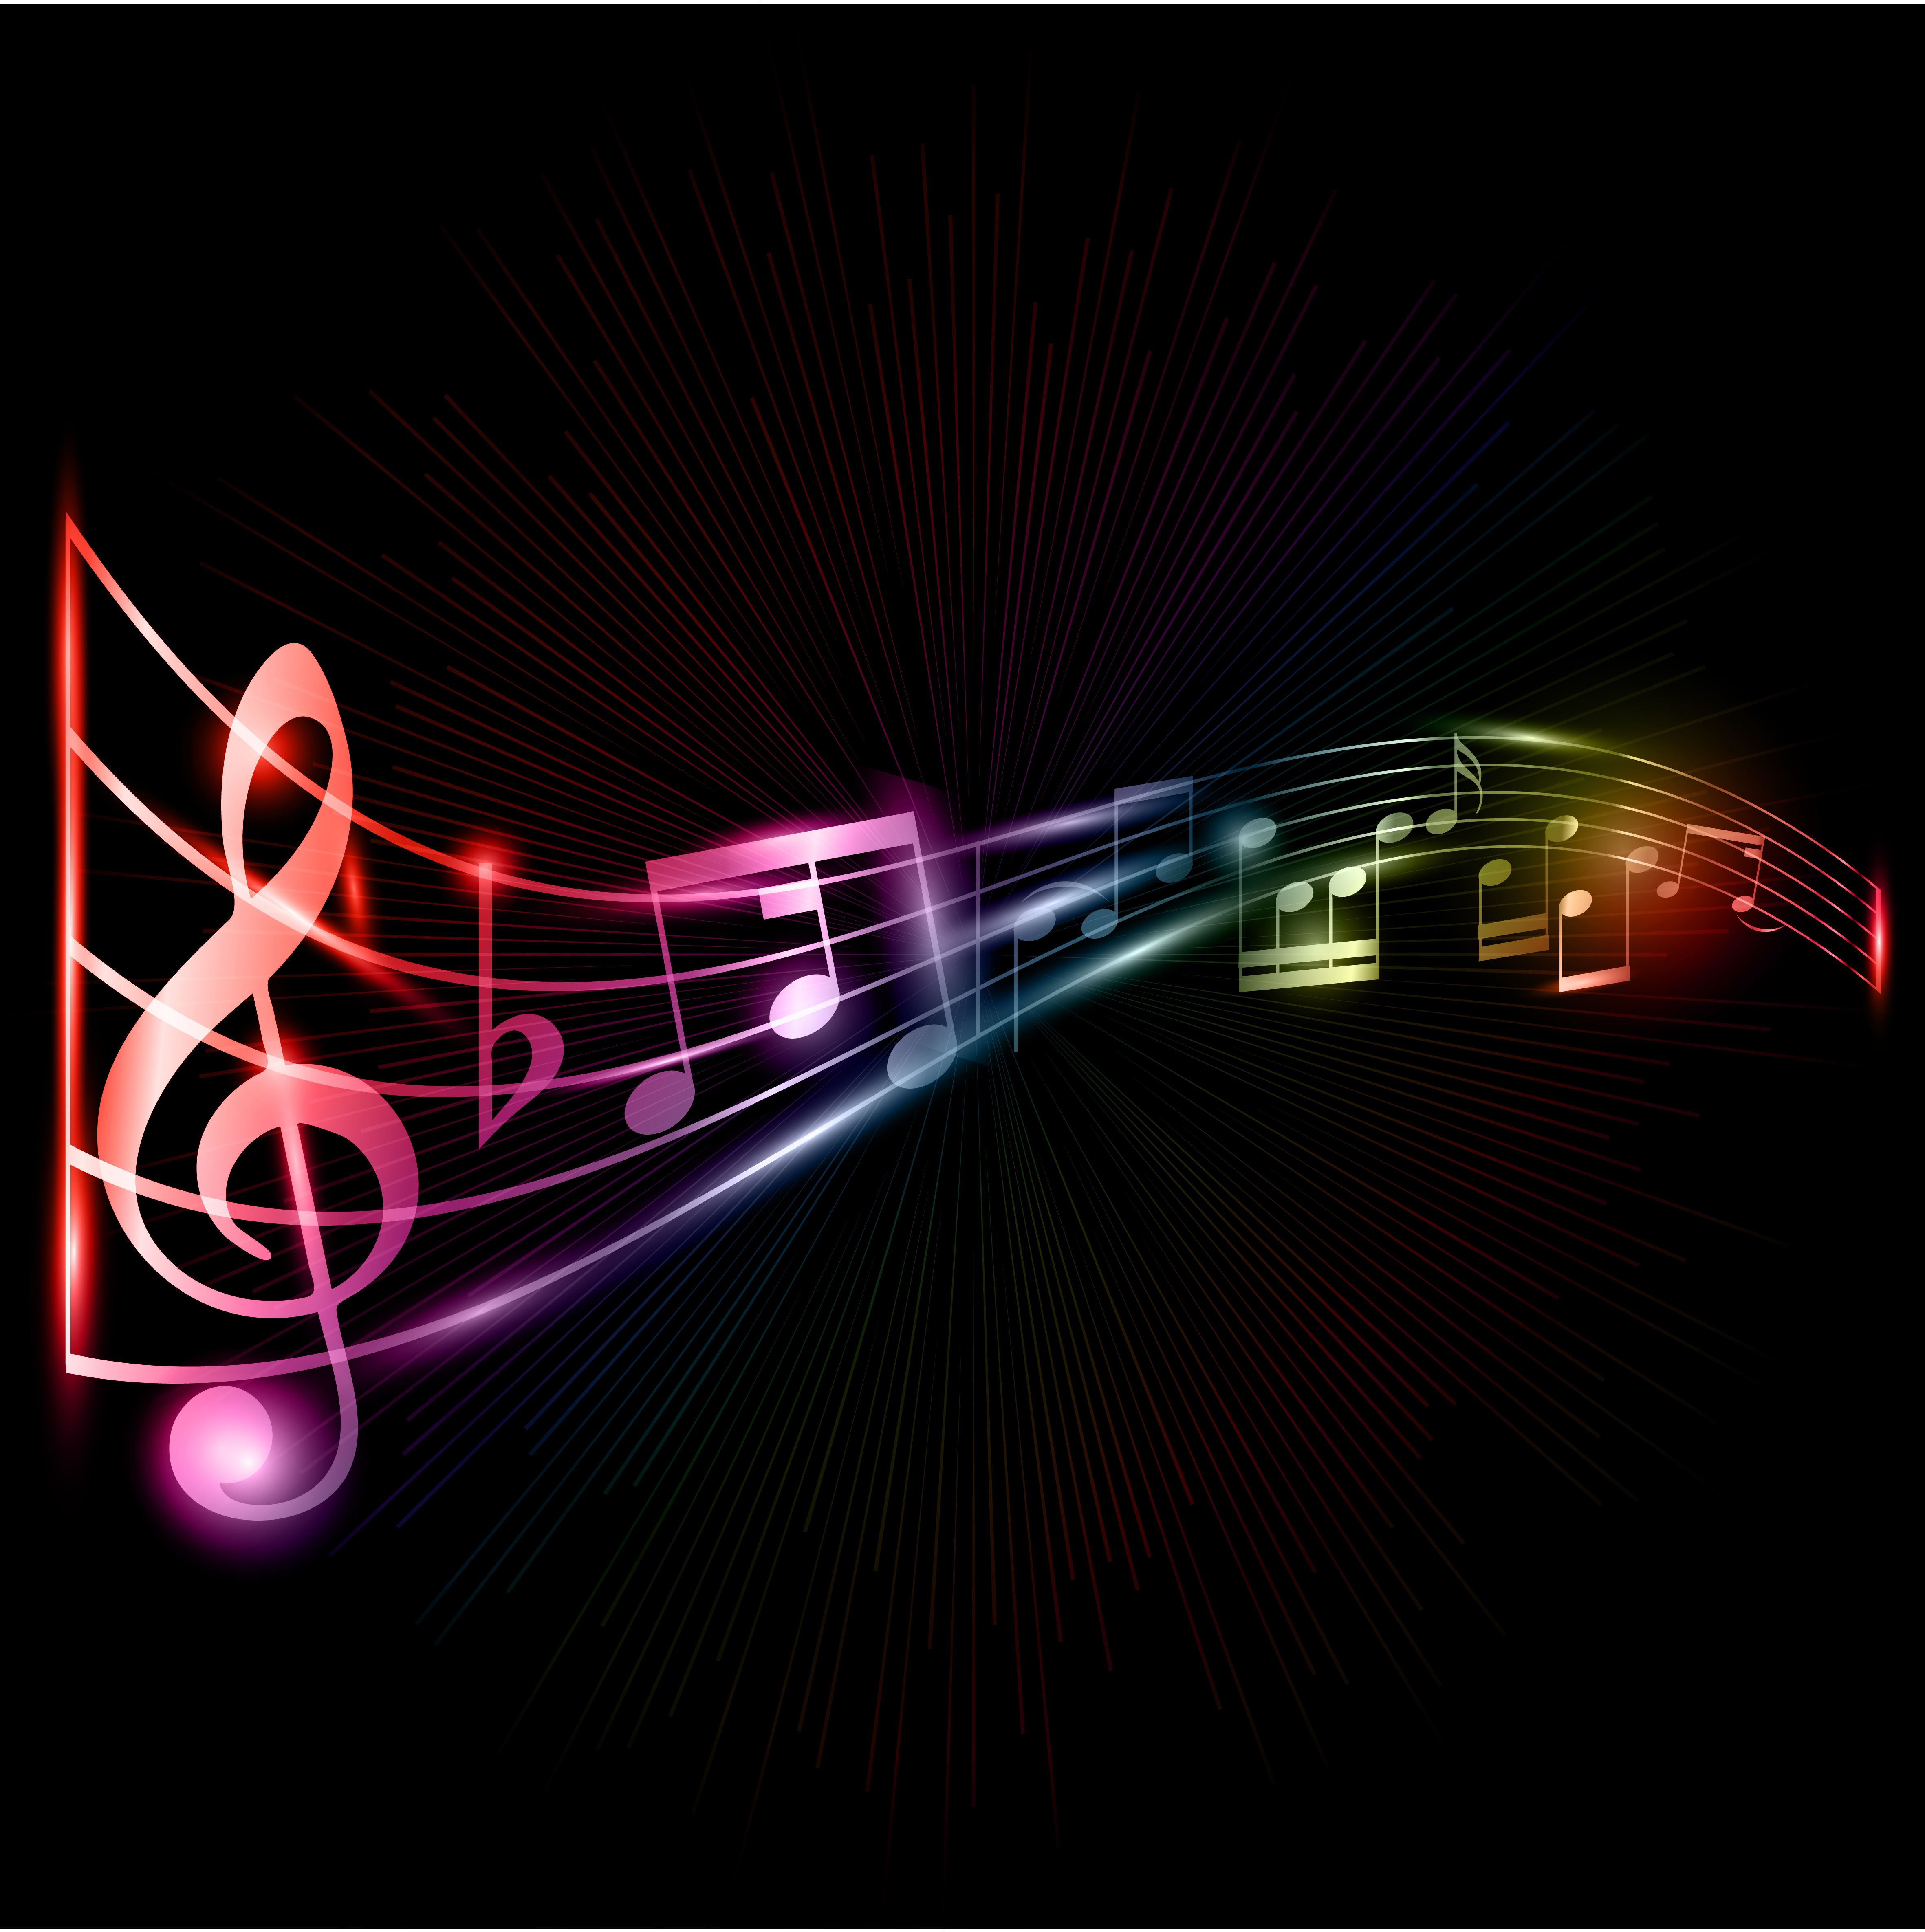 Neon Music Notes Background Home Bio & Philosophy